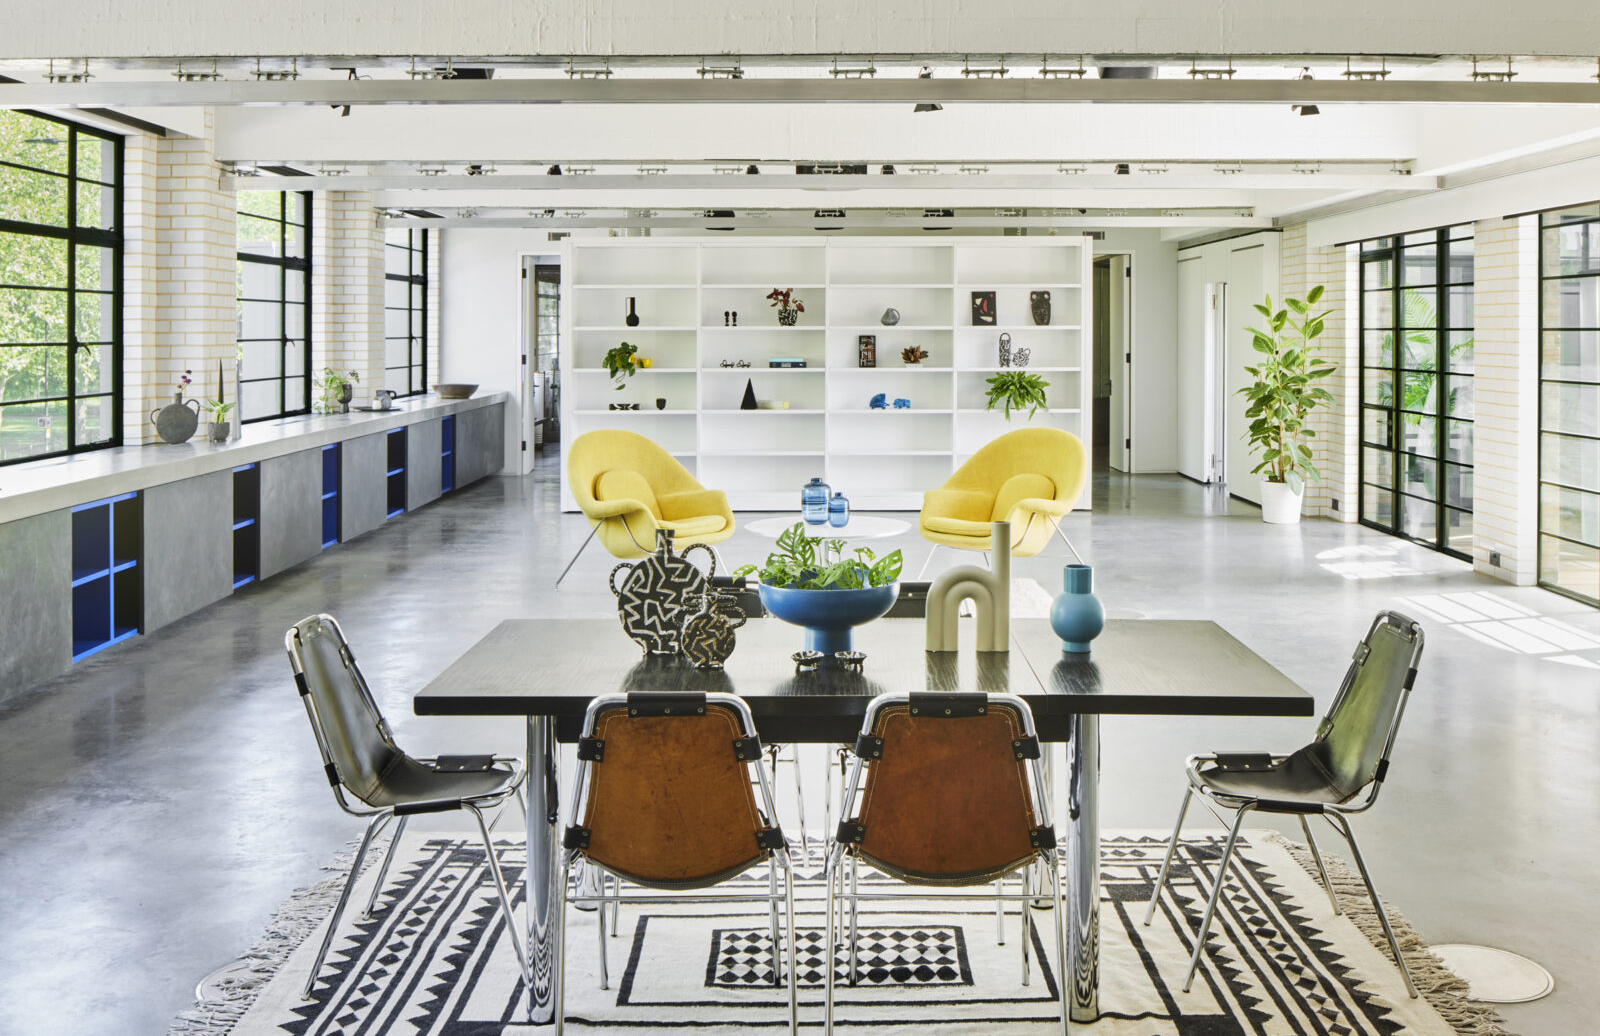 Talisman House apartment on New Kings Road in London